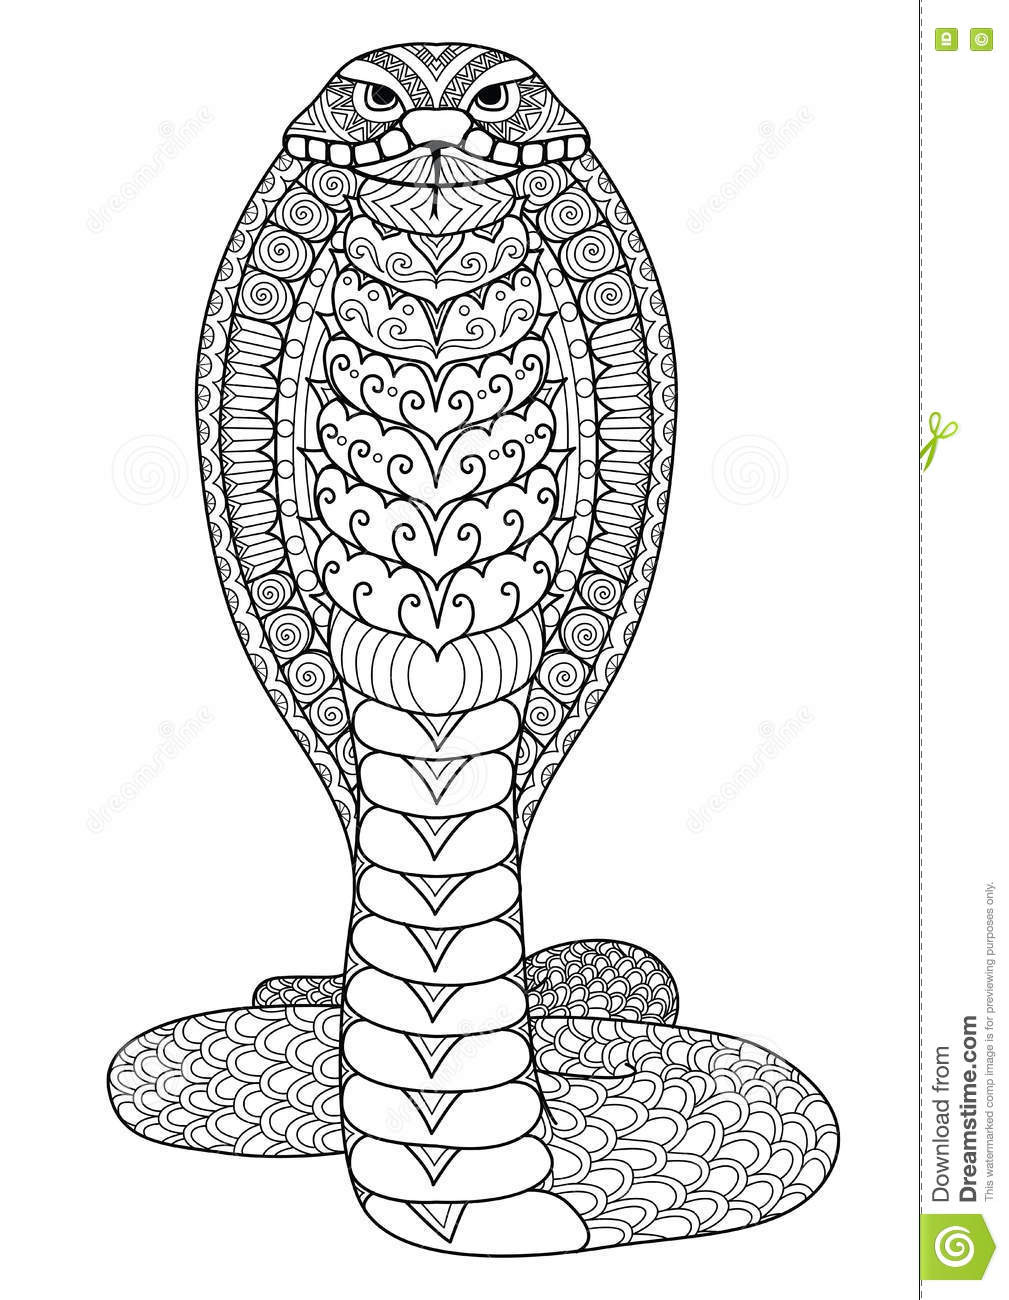 Best ideas about Snake Coloring Pages For Adults . Save or Pin Clean Lines Doodle Art Design Cobra Snake For Coloring Now.